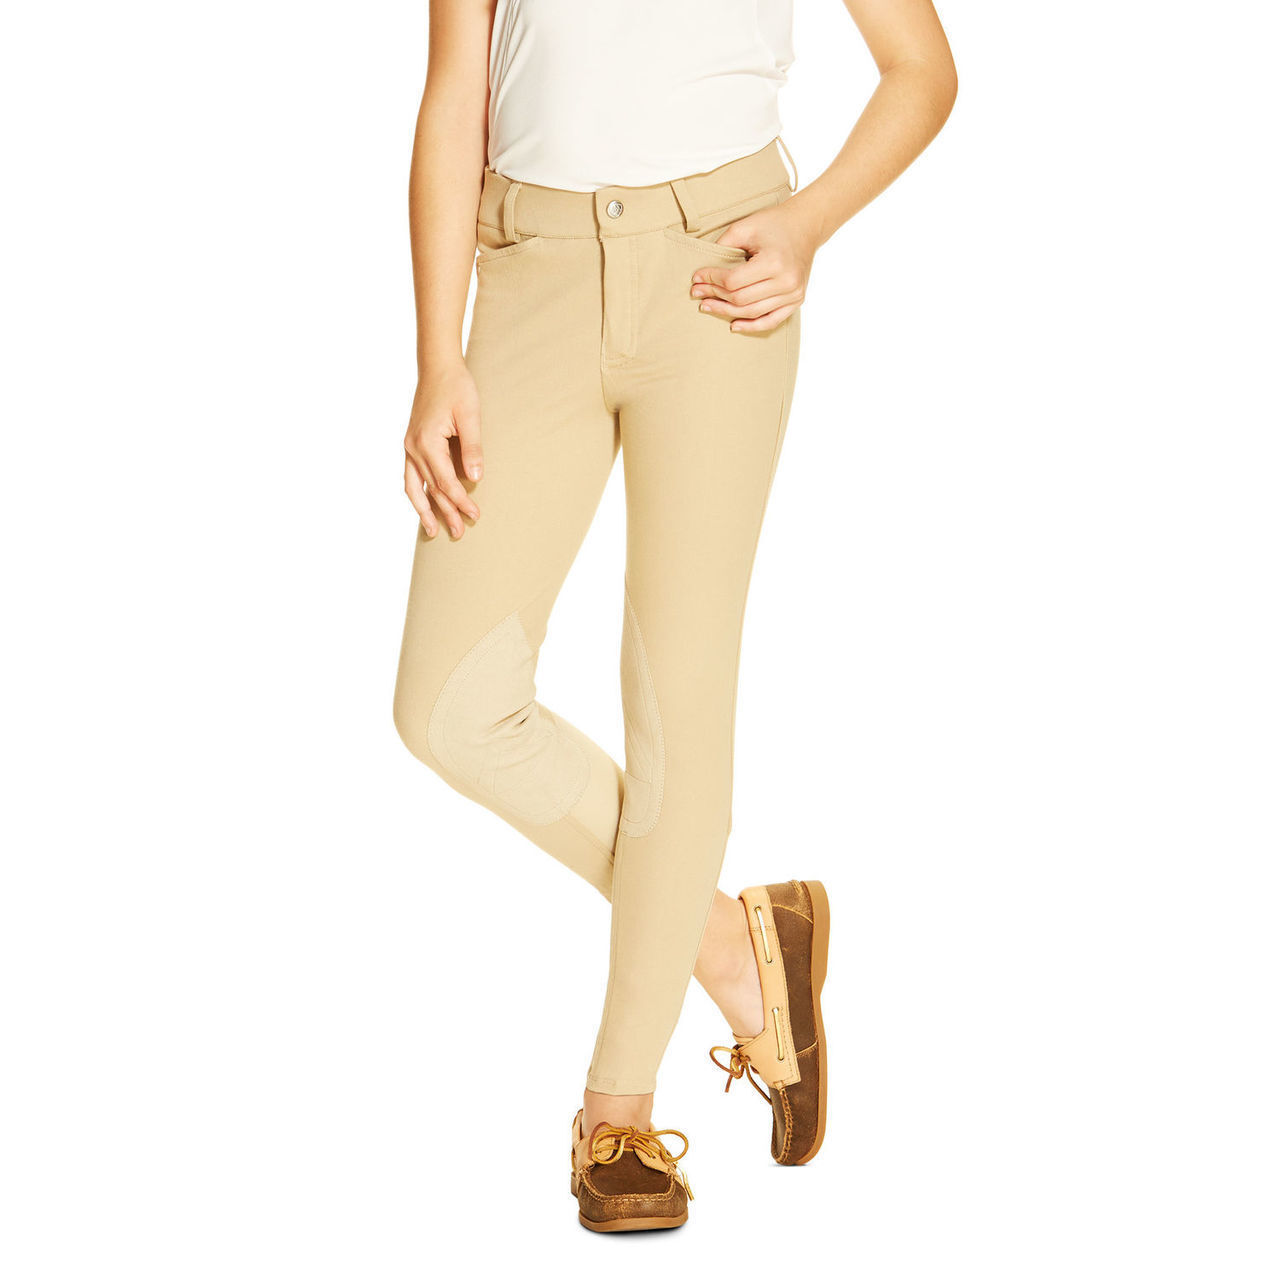 Ariat Heritage Girls Kids Knee Patch Front Zip Breeches - Tan - All Größes